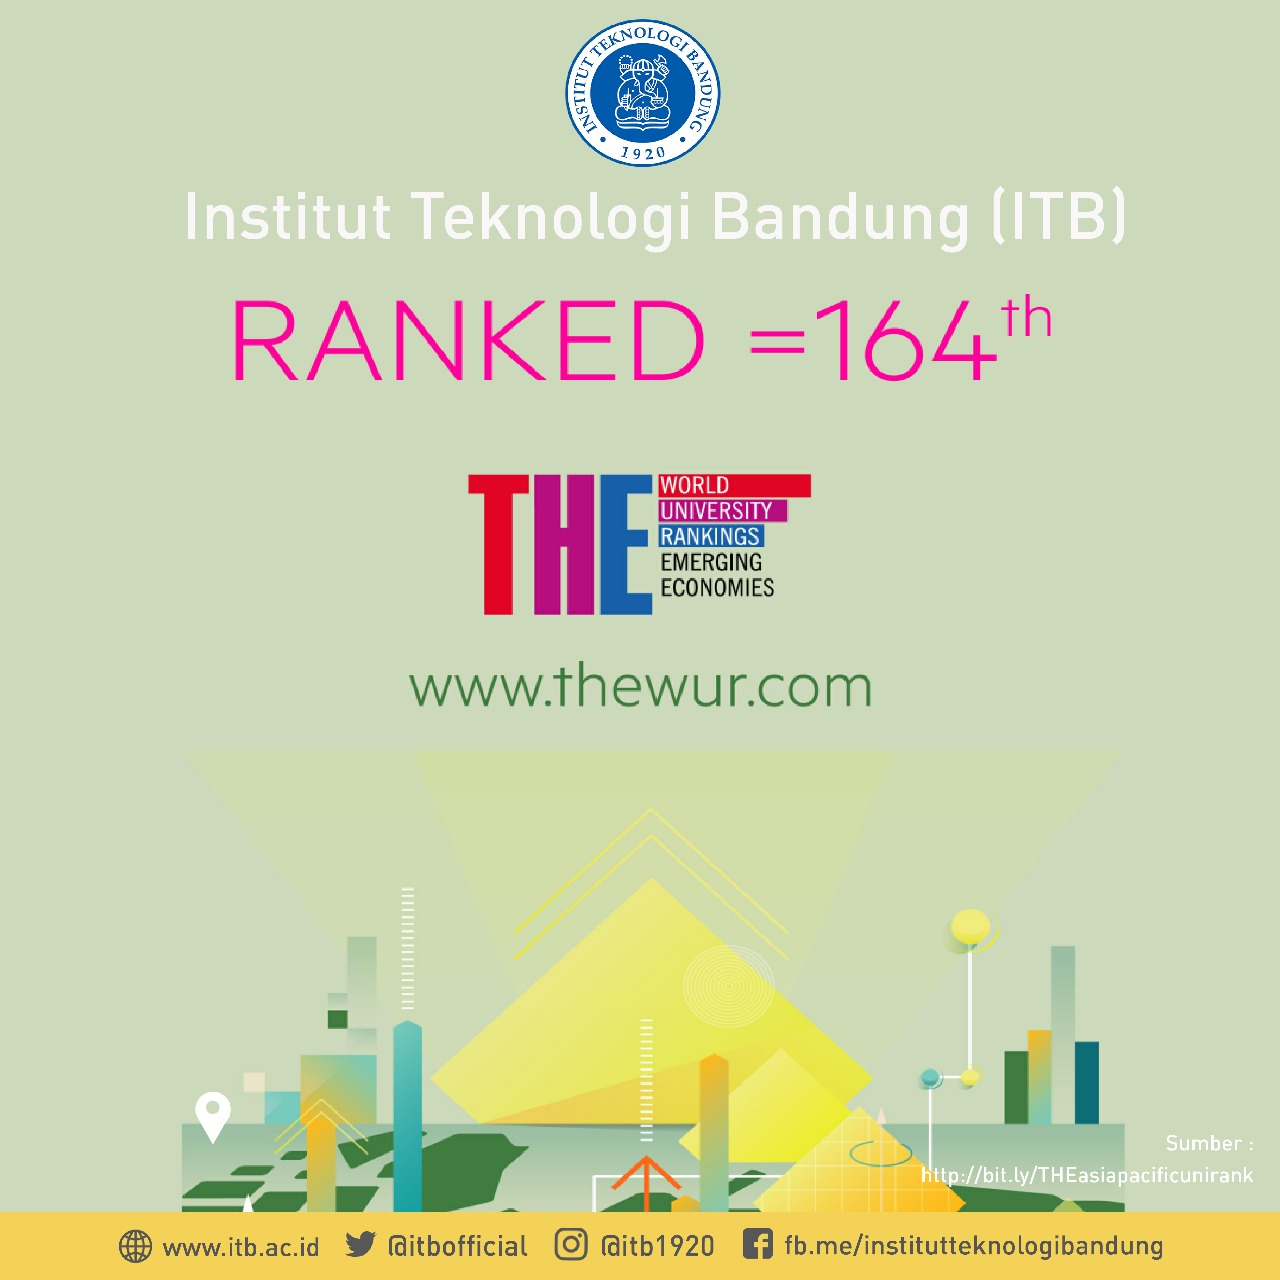 itb-among-the-best-200-universities-in-asia-pacific